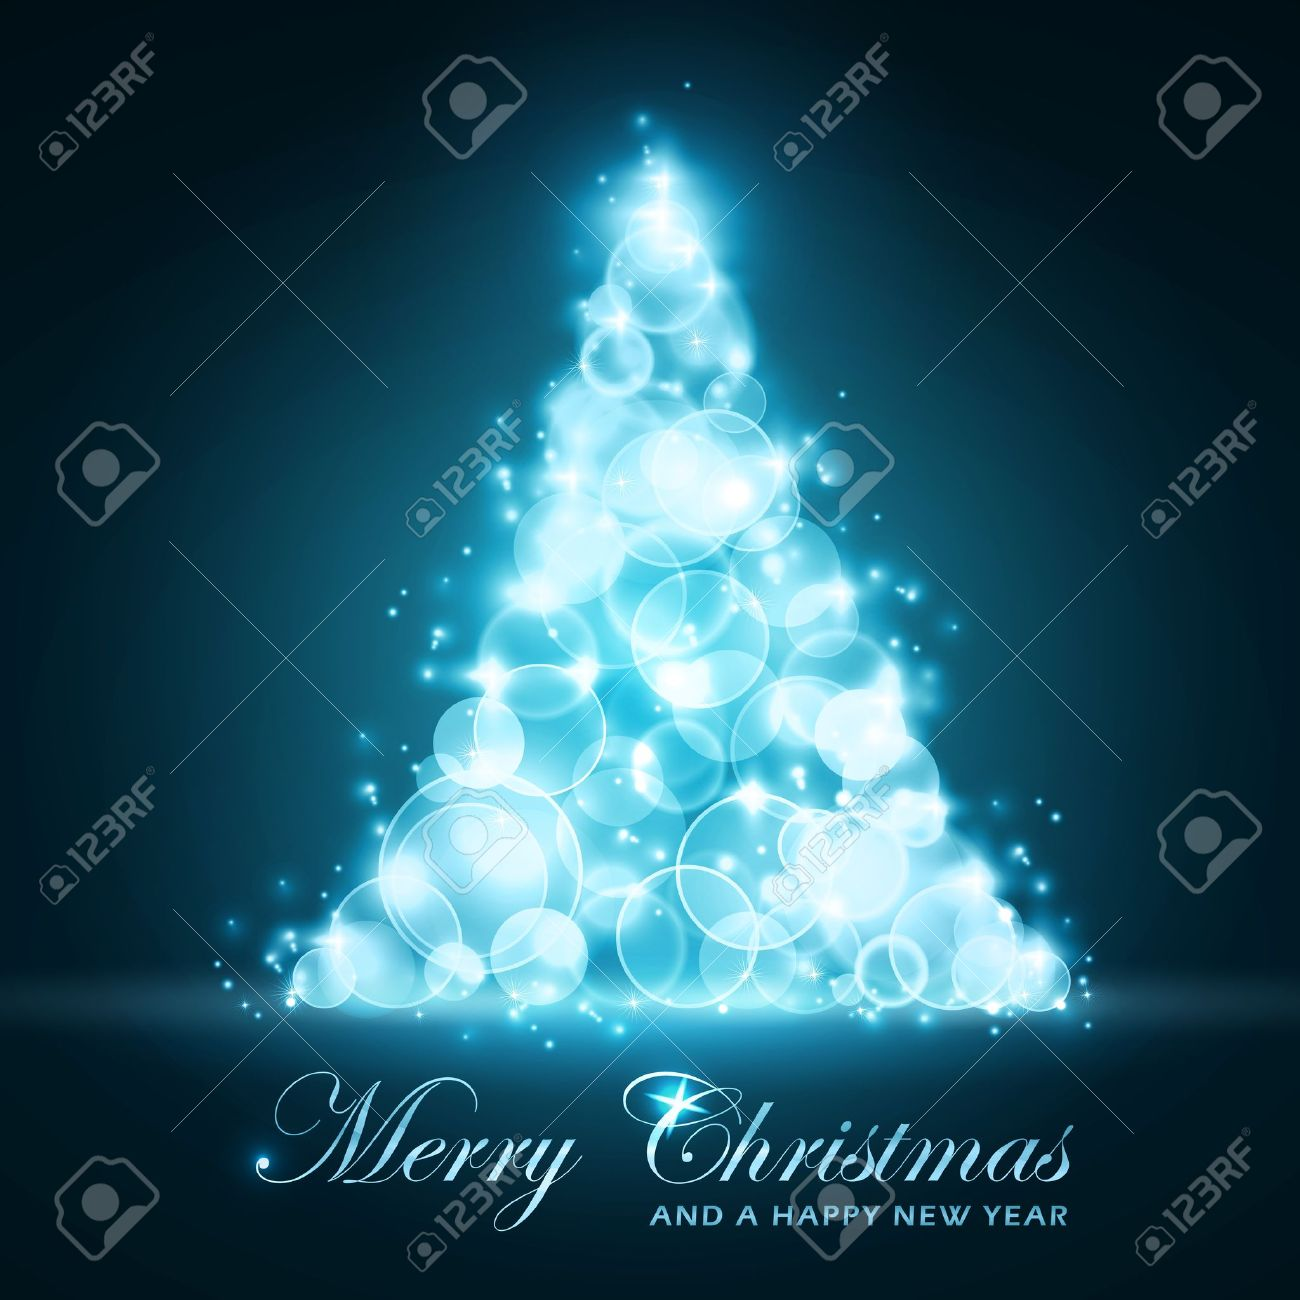 Blue glowing light dots forming a shining and sparkling Christmas tree. Christmas and New Years card. Stock Vector - 11337179